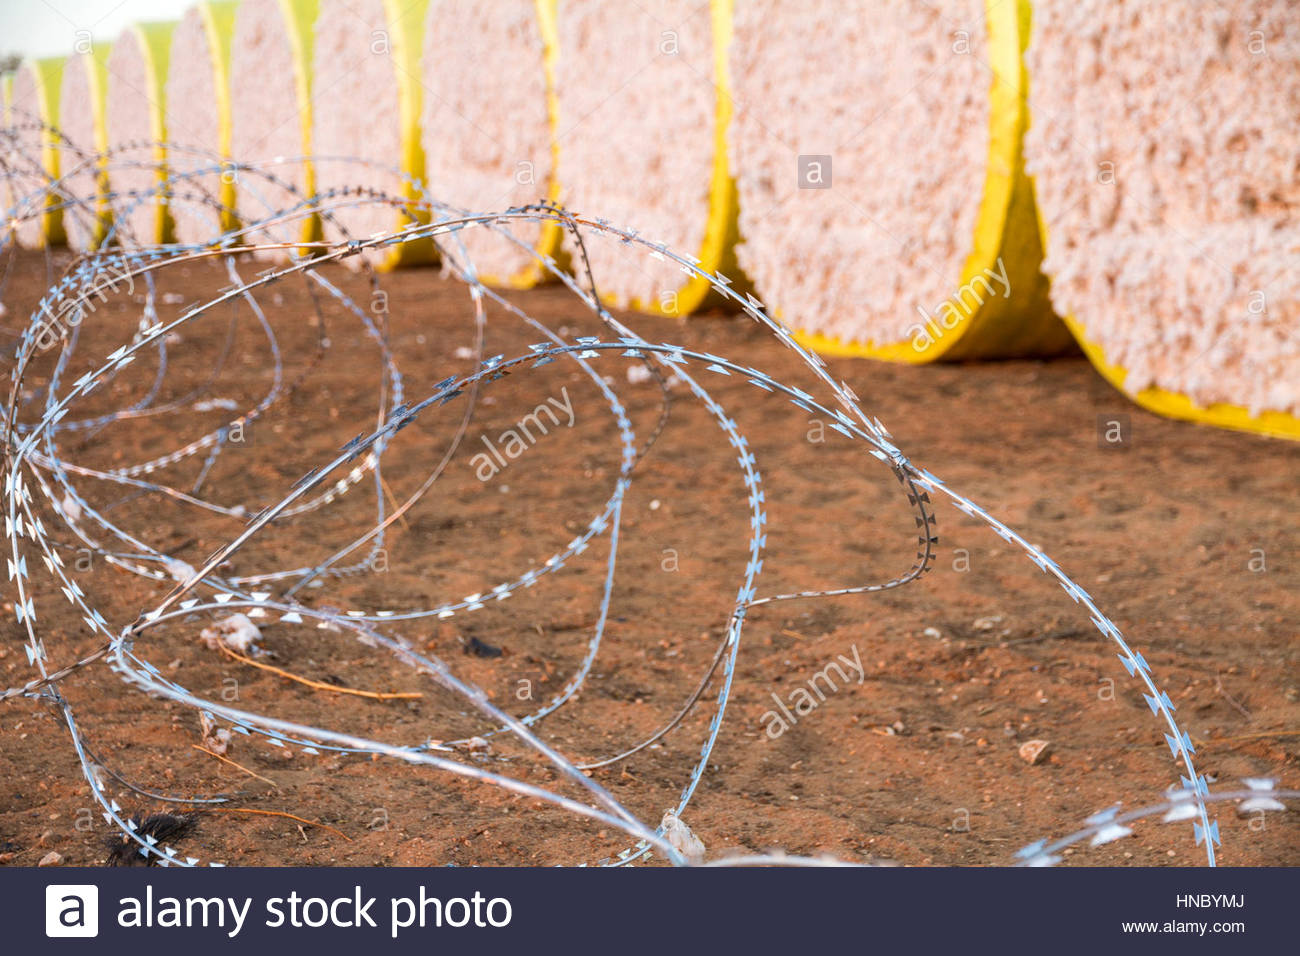 Round bales of harvested cotton wrapped in yellow plastic ready for shipment, Surrounded by a barbwire - Stock Image